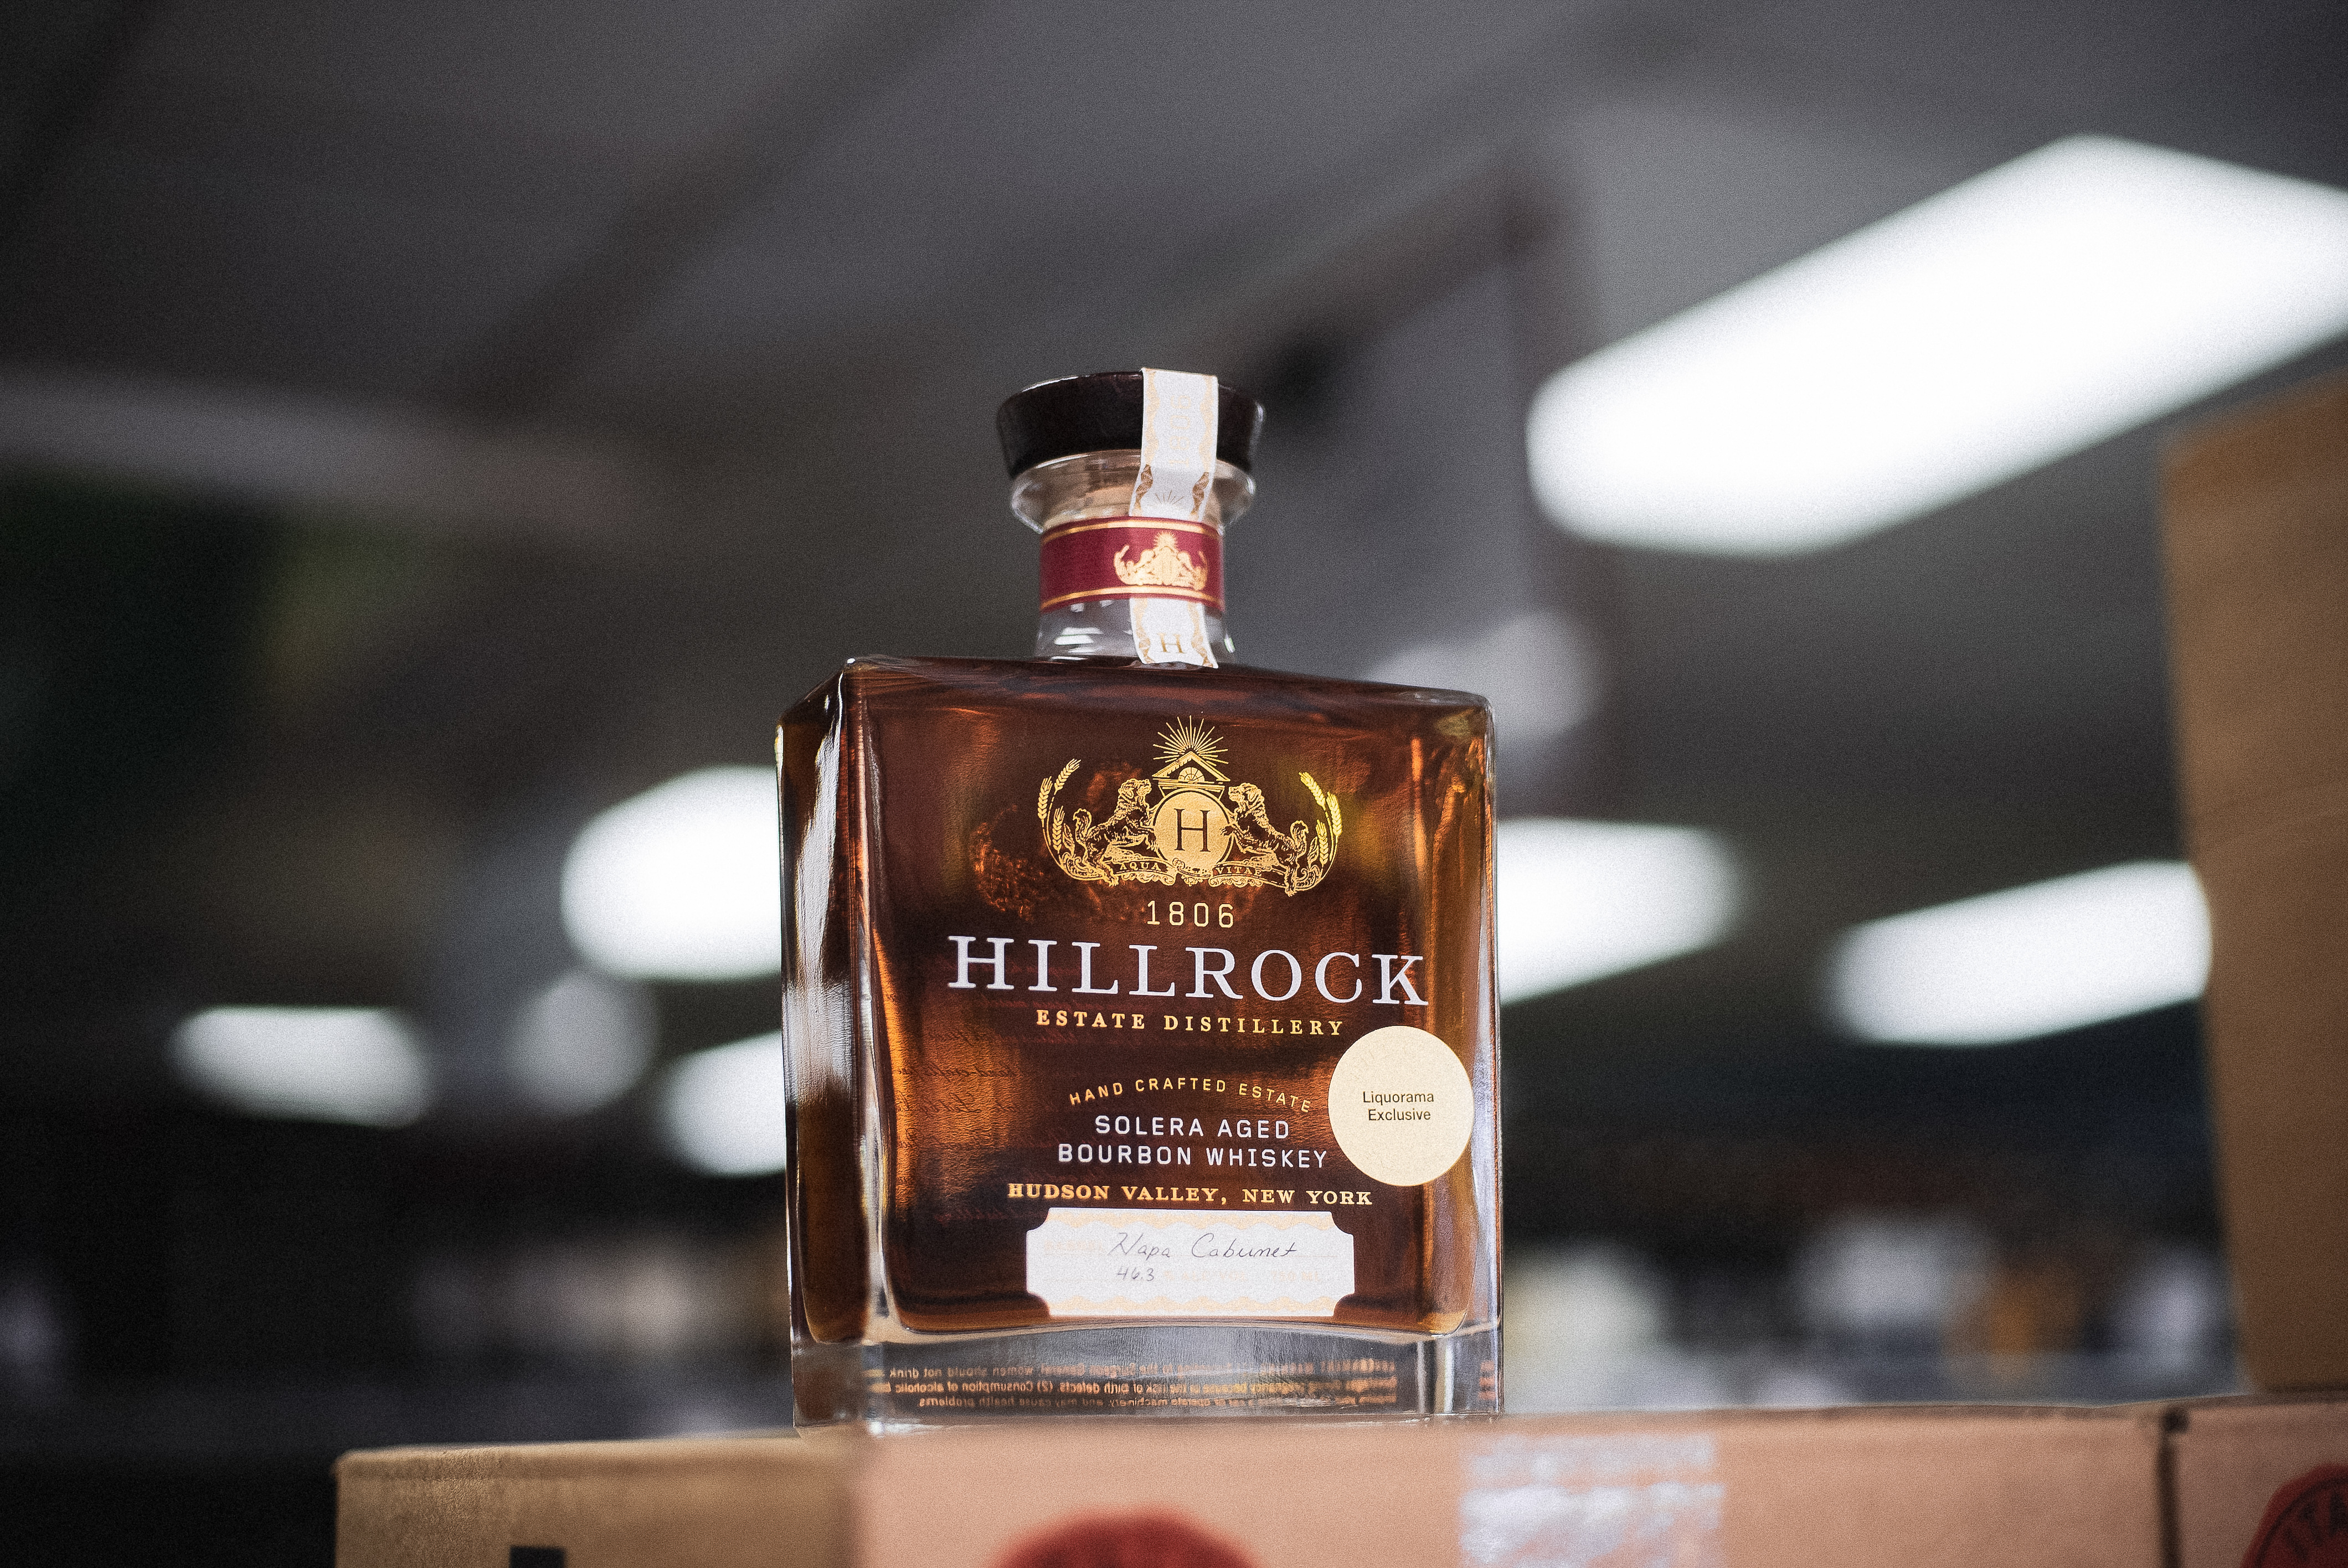 Exclusive: Hillrock Solera Aged, Napa Cabernet Finished Bourbon